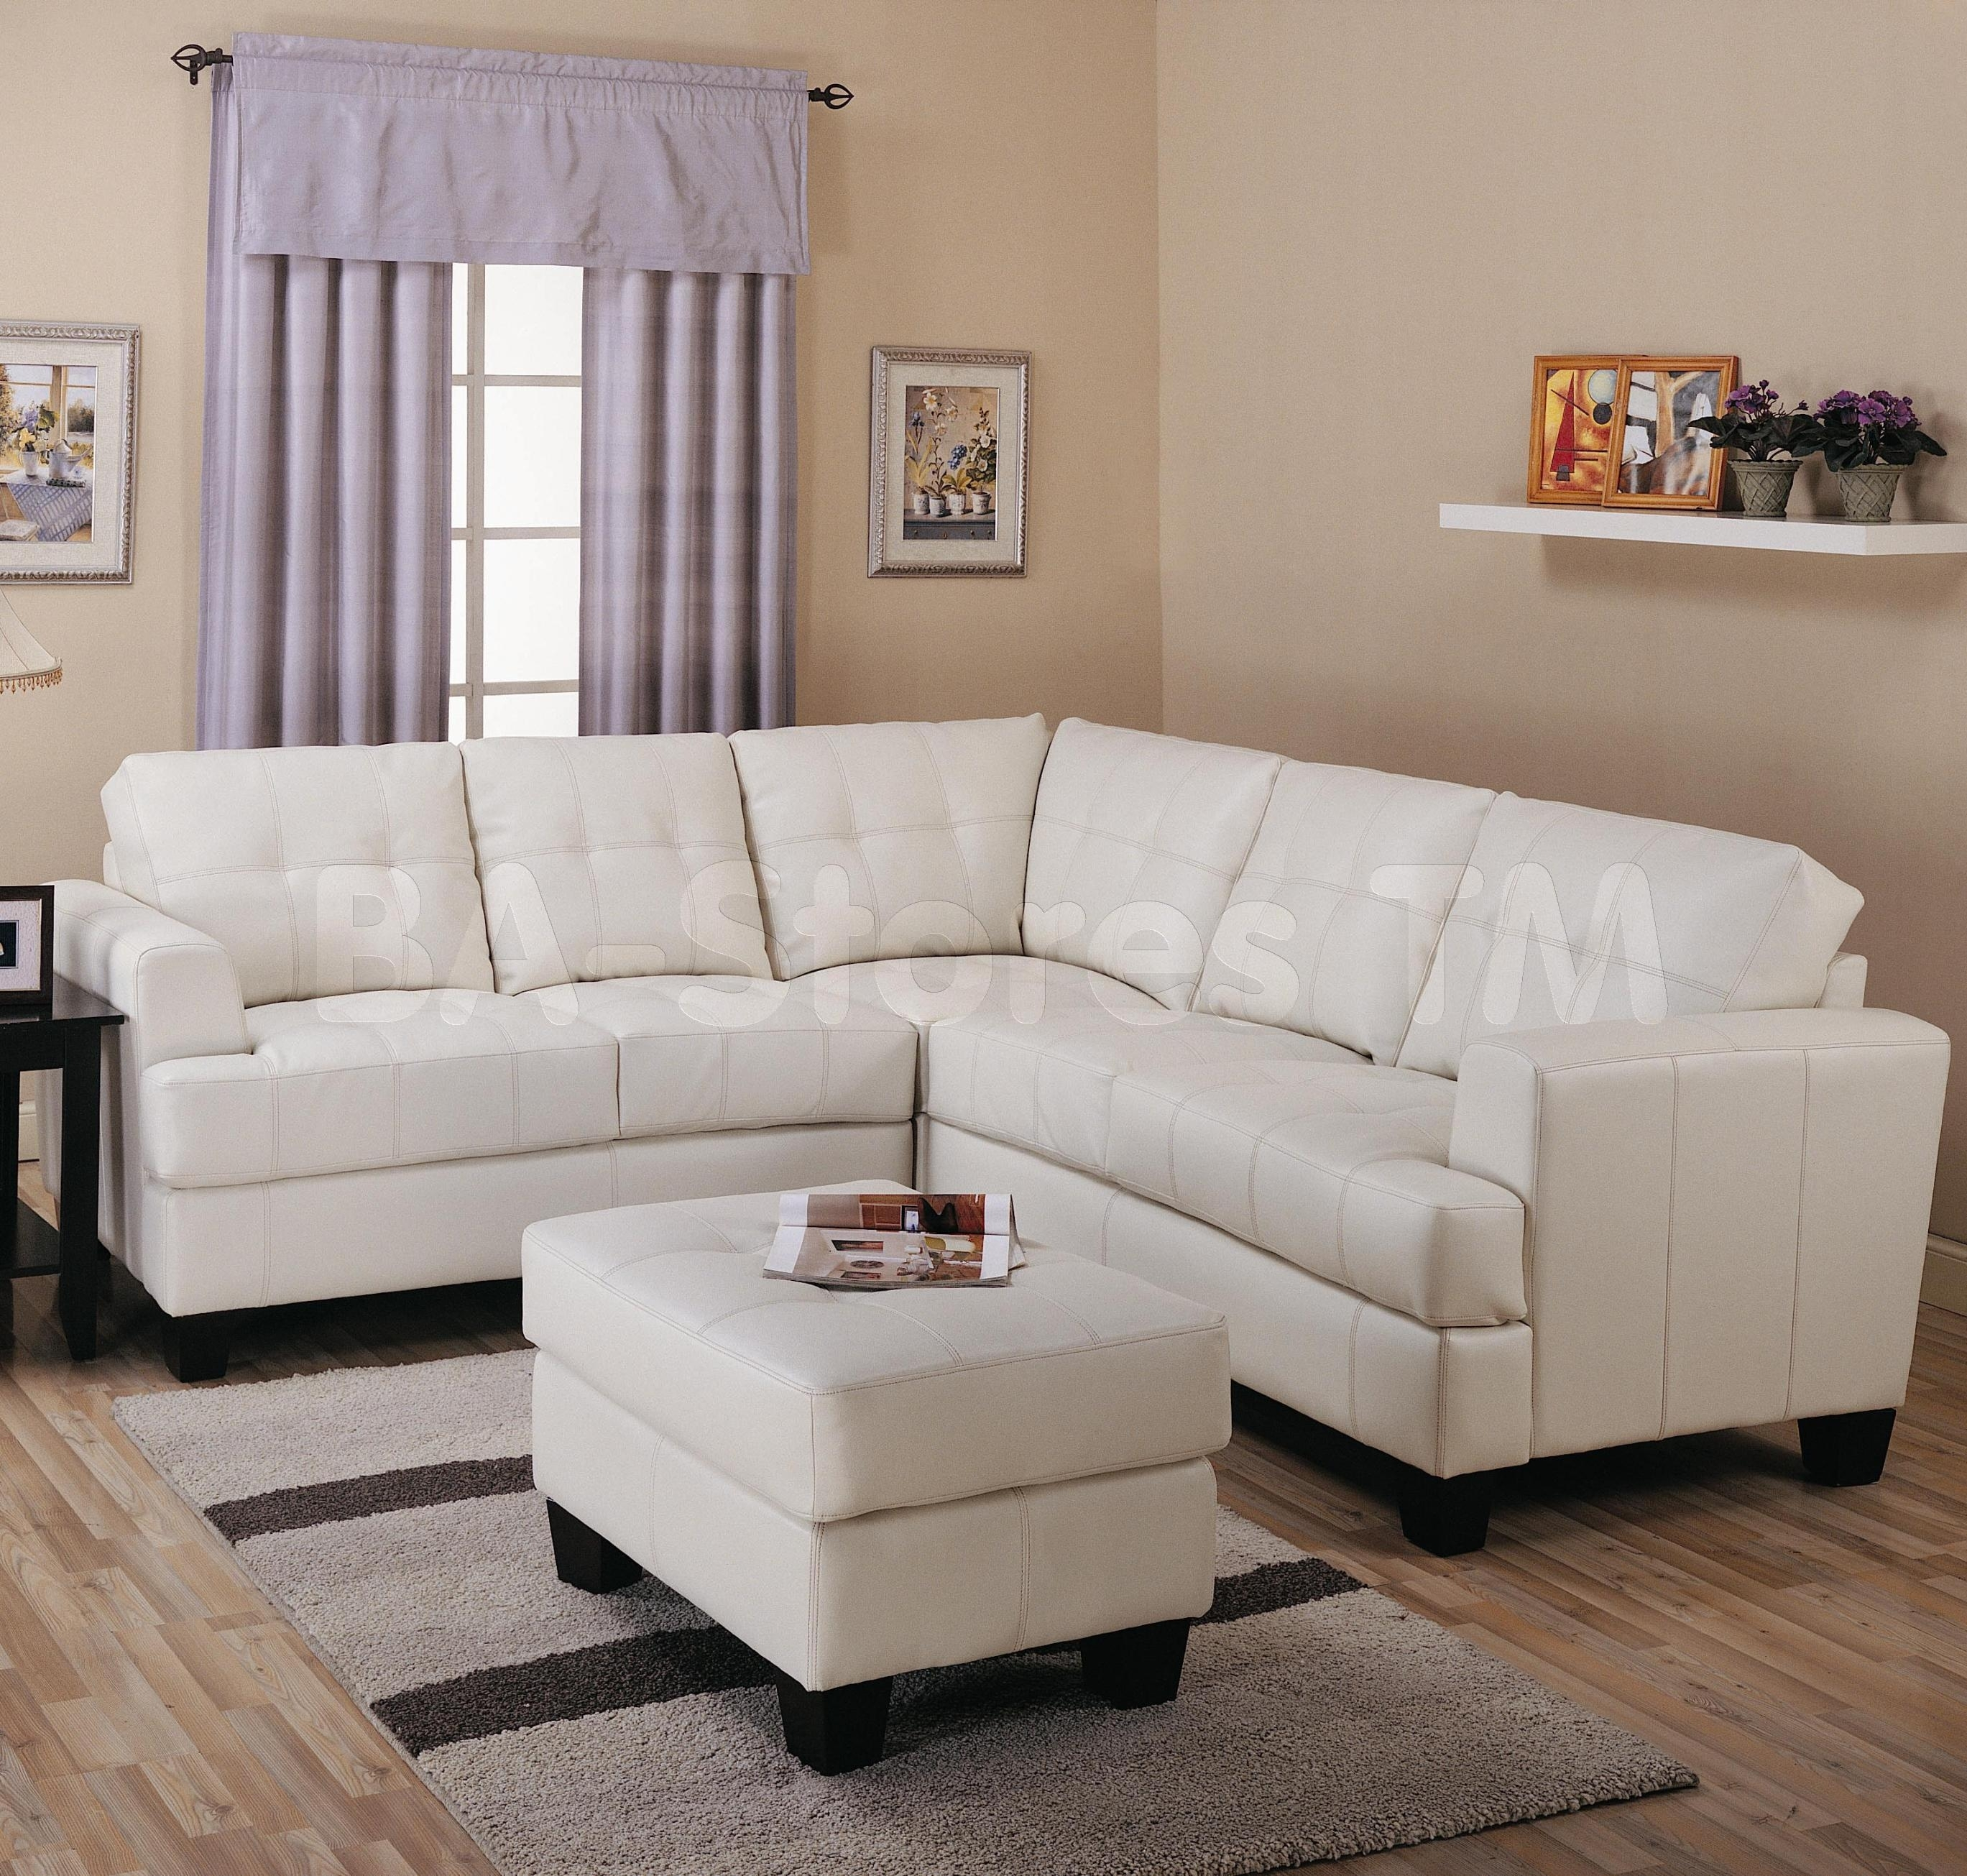 Sectional Sofa Design: Adorable Cream Leather Sectional Sofa Cream throughout Sacramento Sectional Sofas (Image 8 of 10)